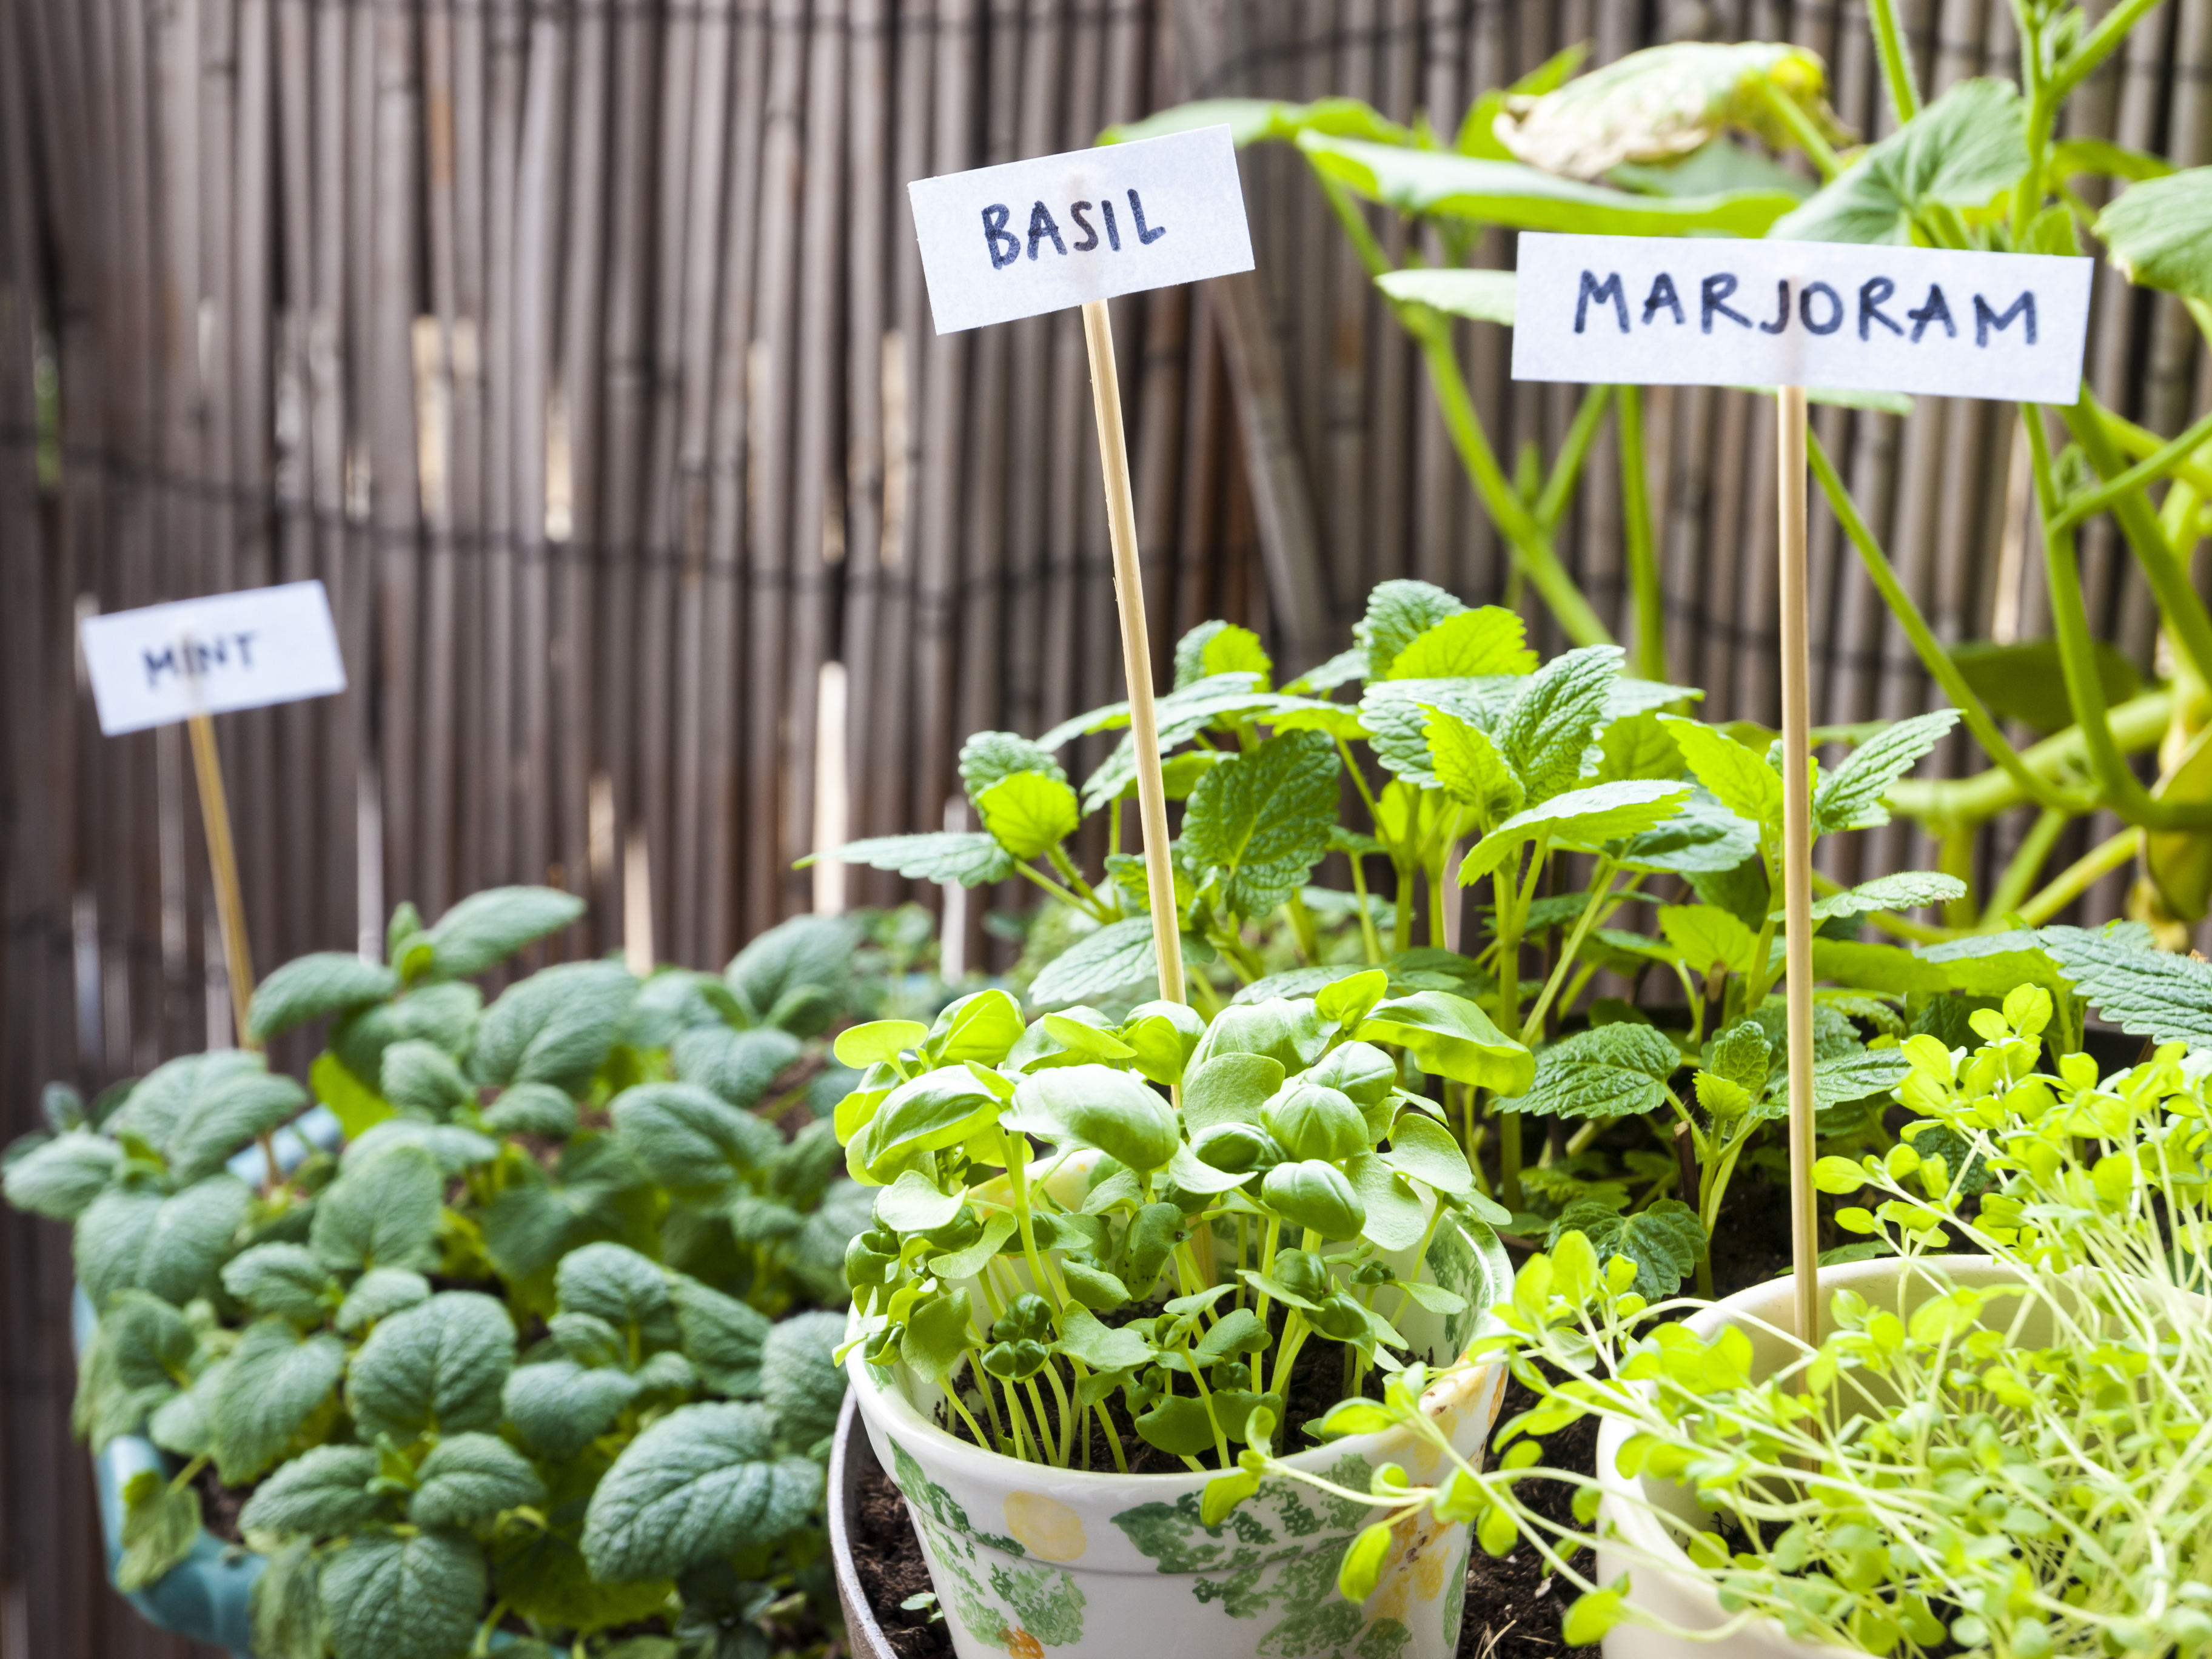 Basil, marjoram, balm-mint, and mint in flower pots in balcony. Organic, pesticide free gardening.